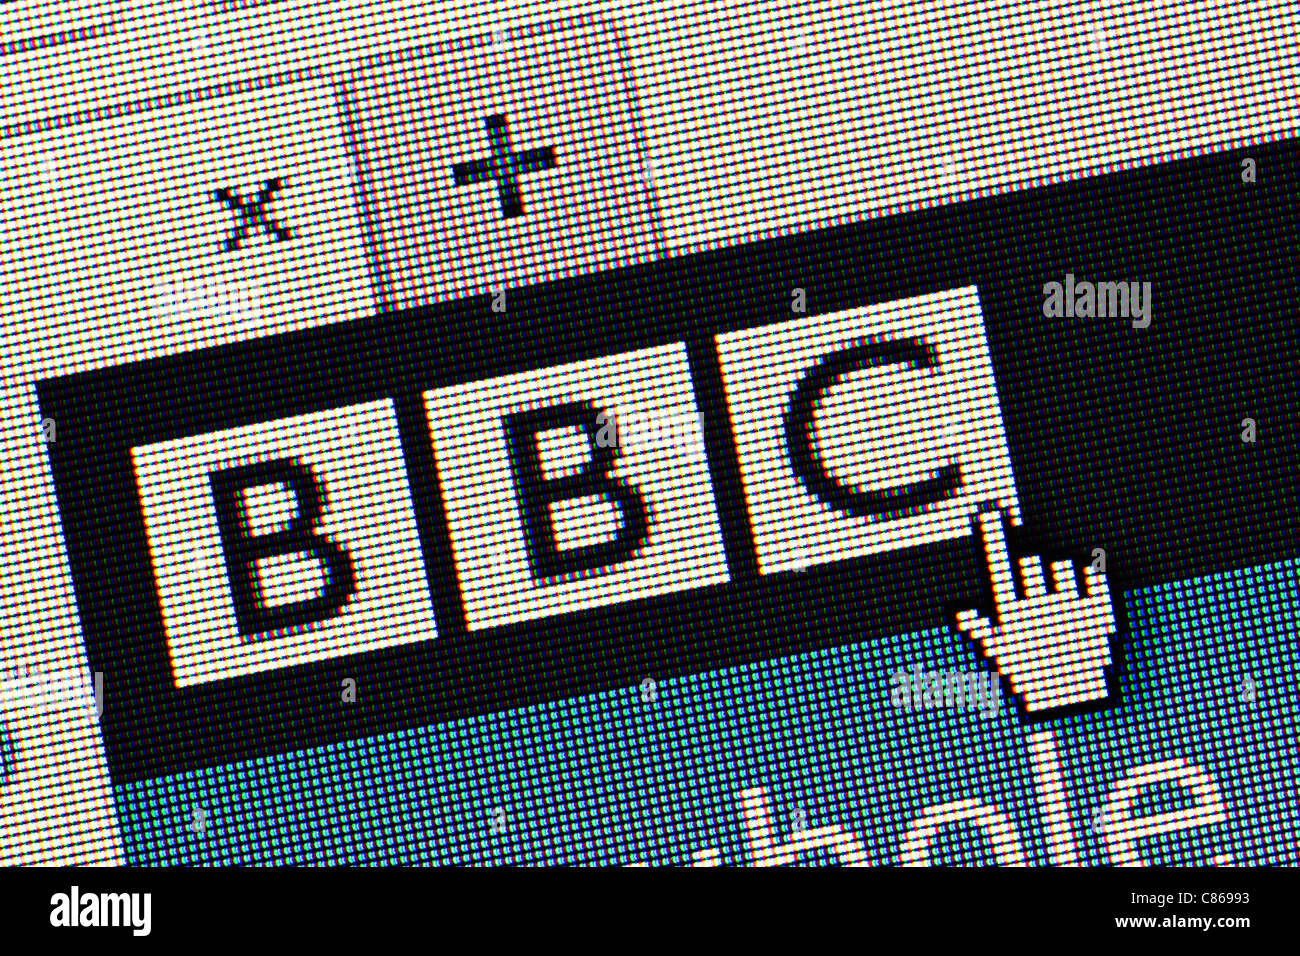 BBC logo and website close up - Stock Image